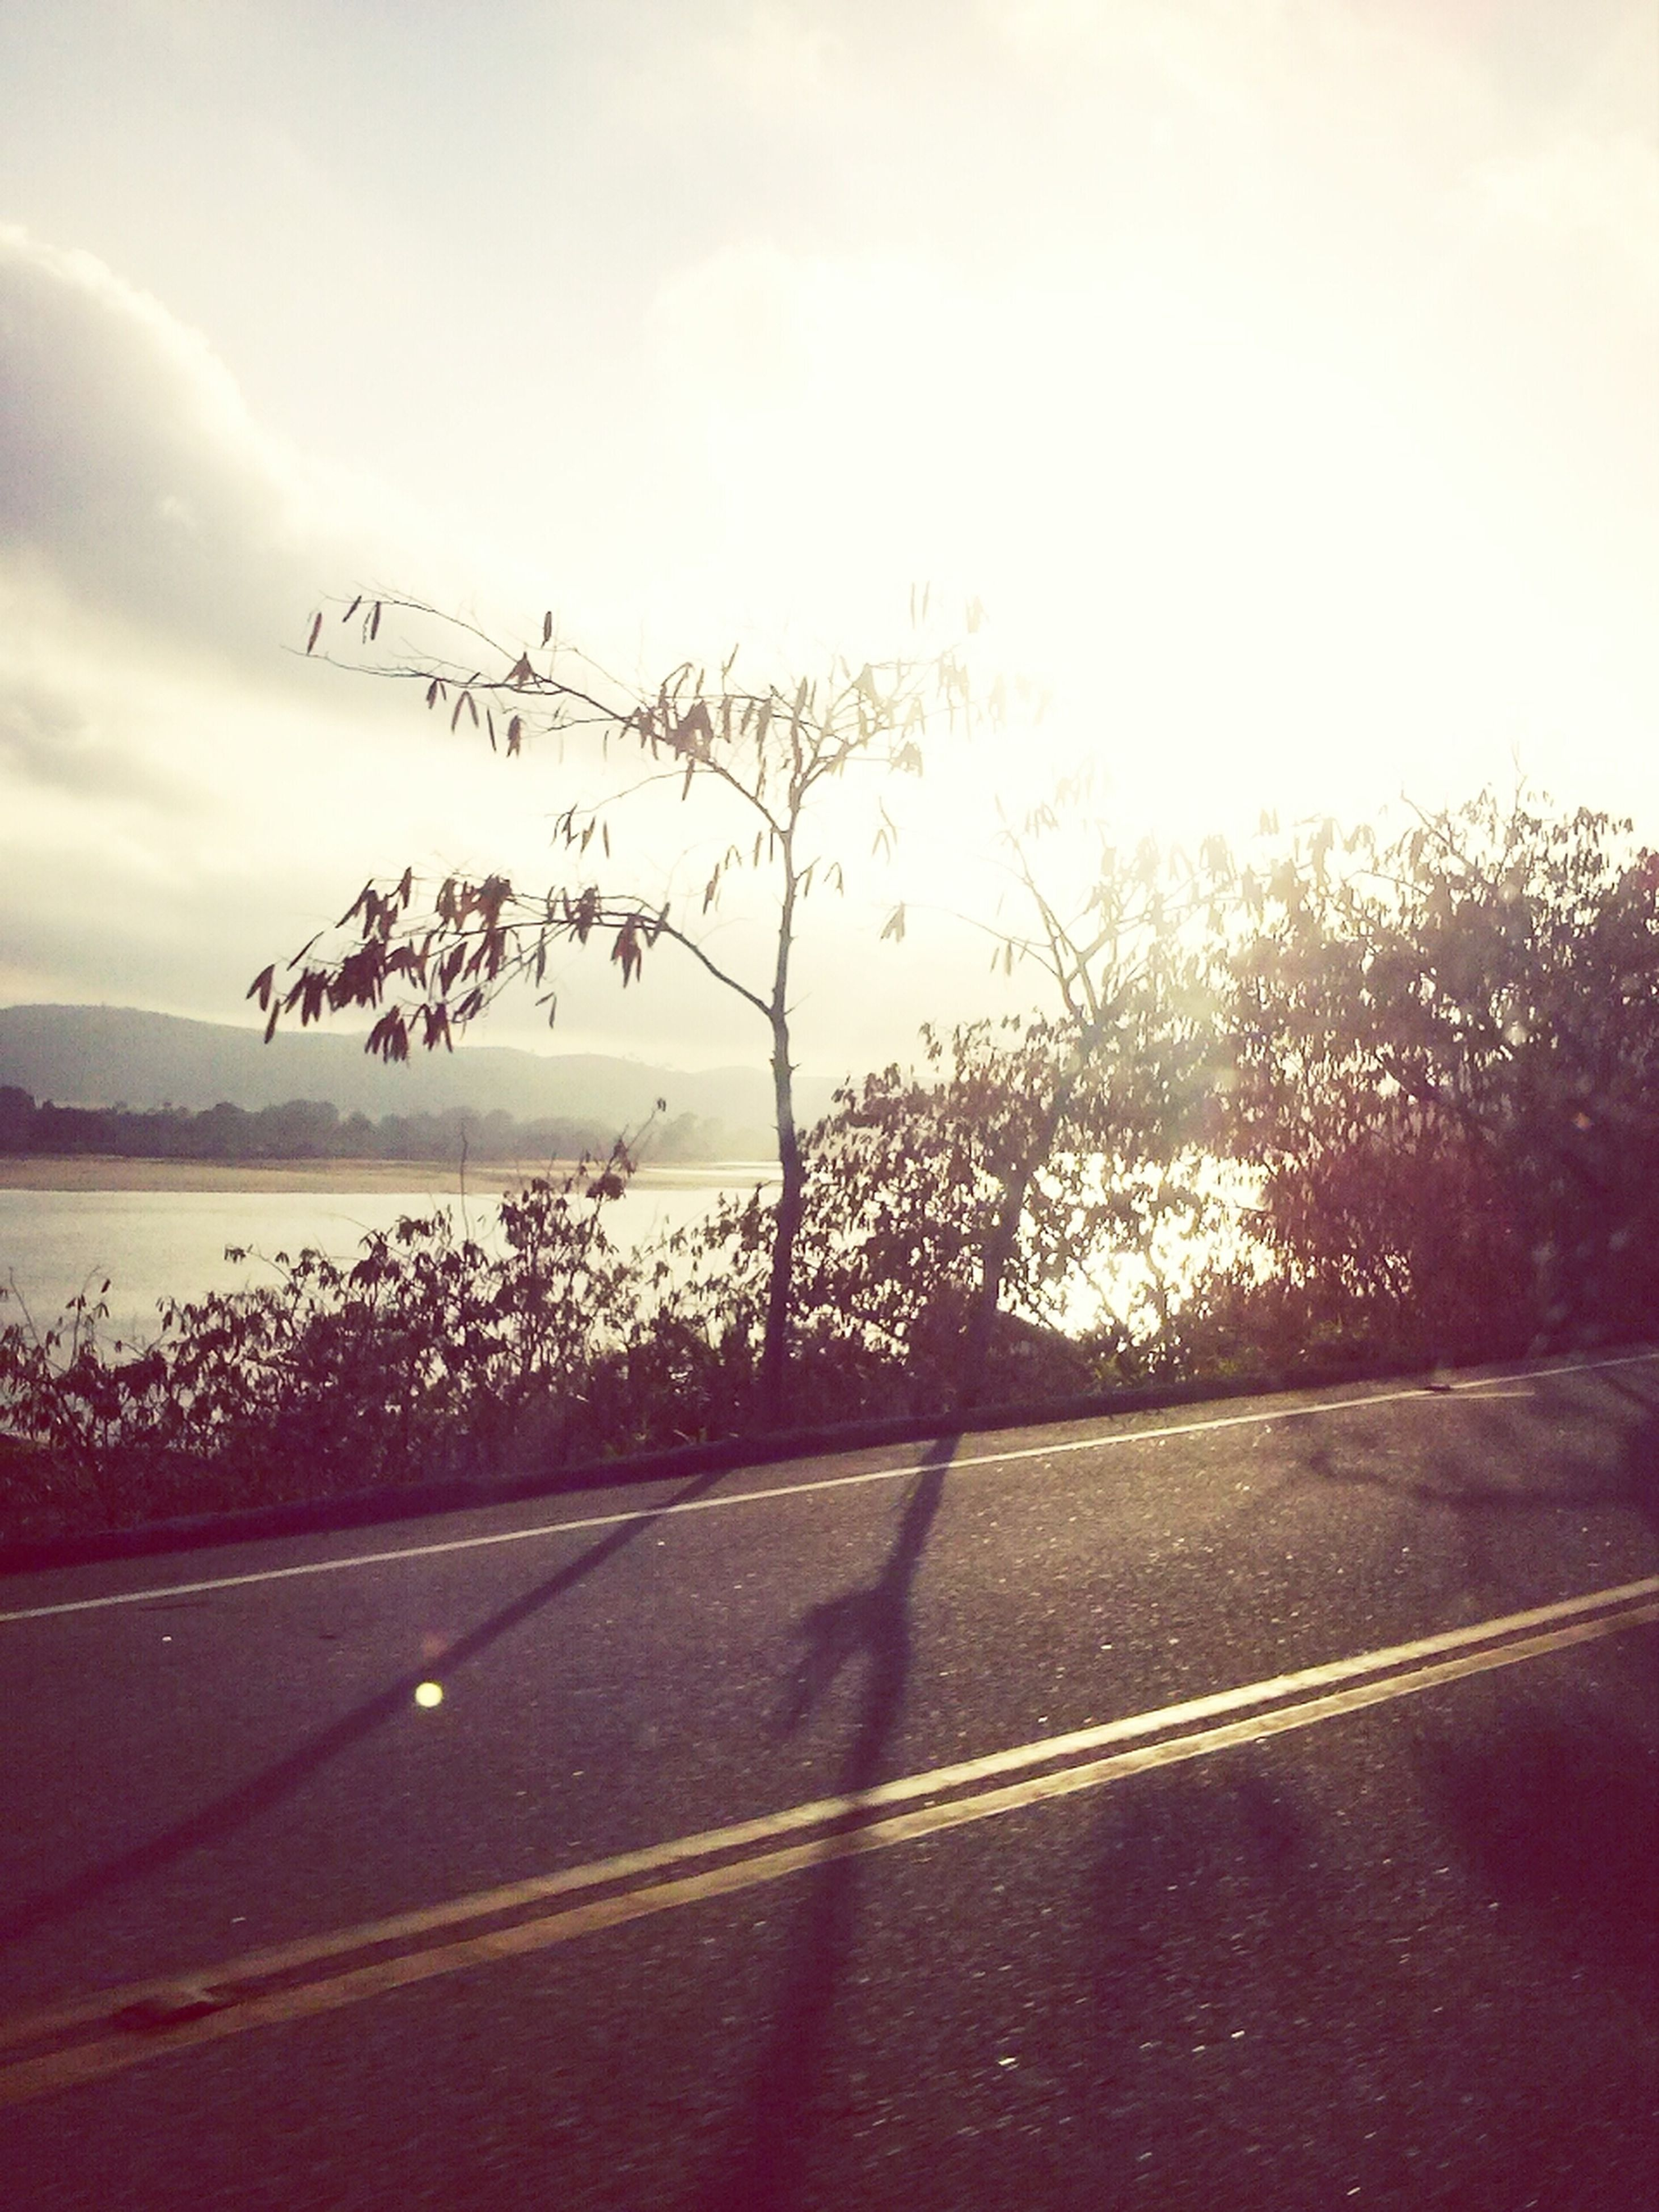 road, transportation, sky, the way forward, tree, road marking, tranquil scene, tranquility, beauty in nature, nature, scenics, water, sunset, street, country road, silhouette, cloud - sky, no people, outdoors, asphalt